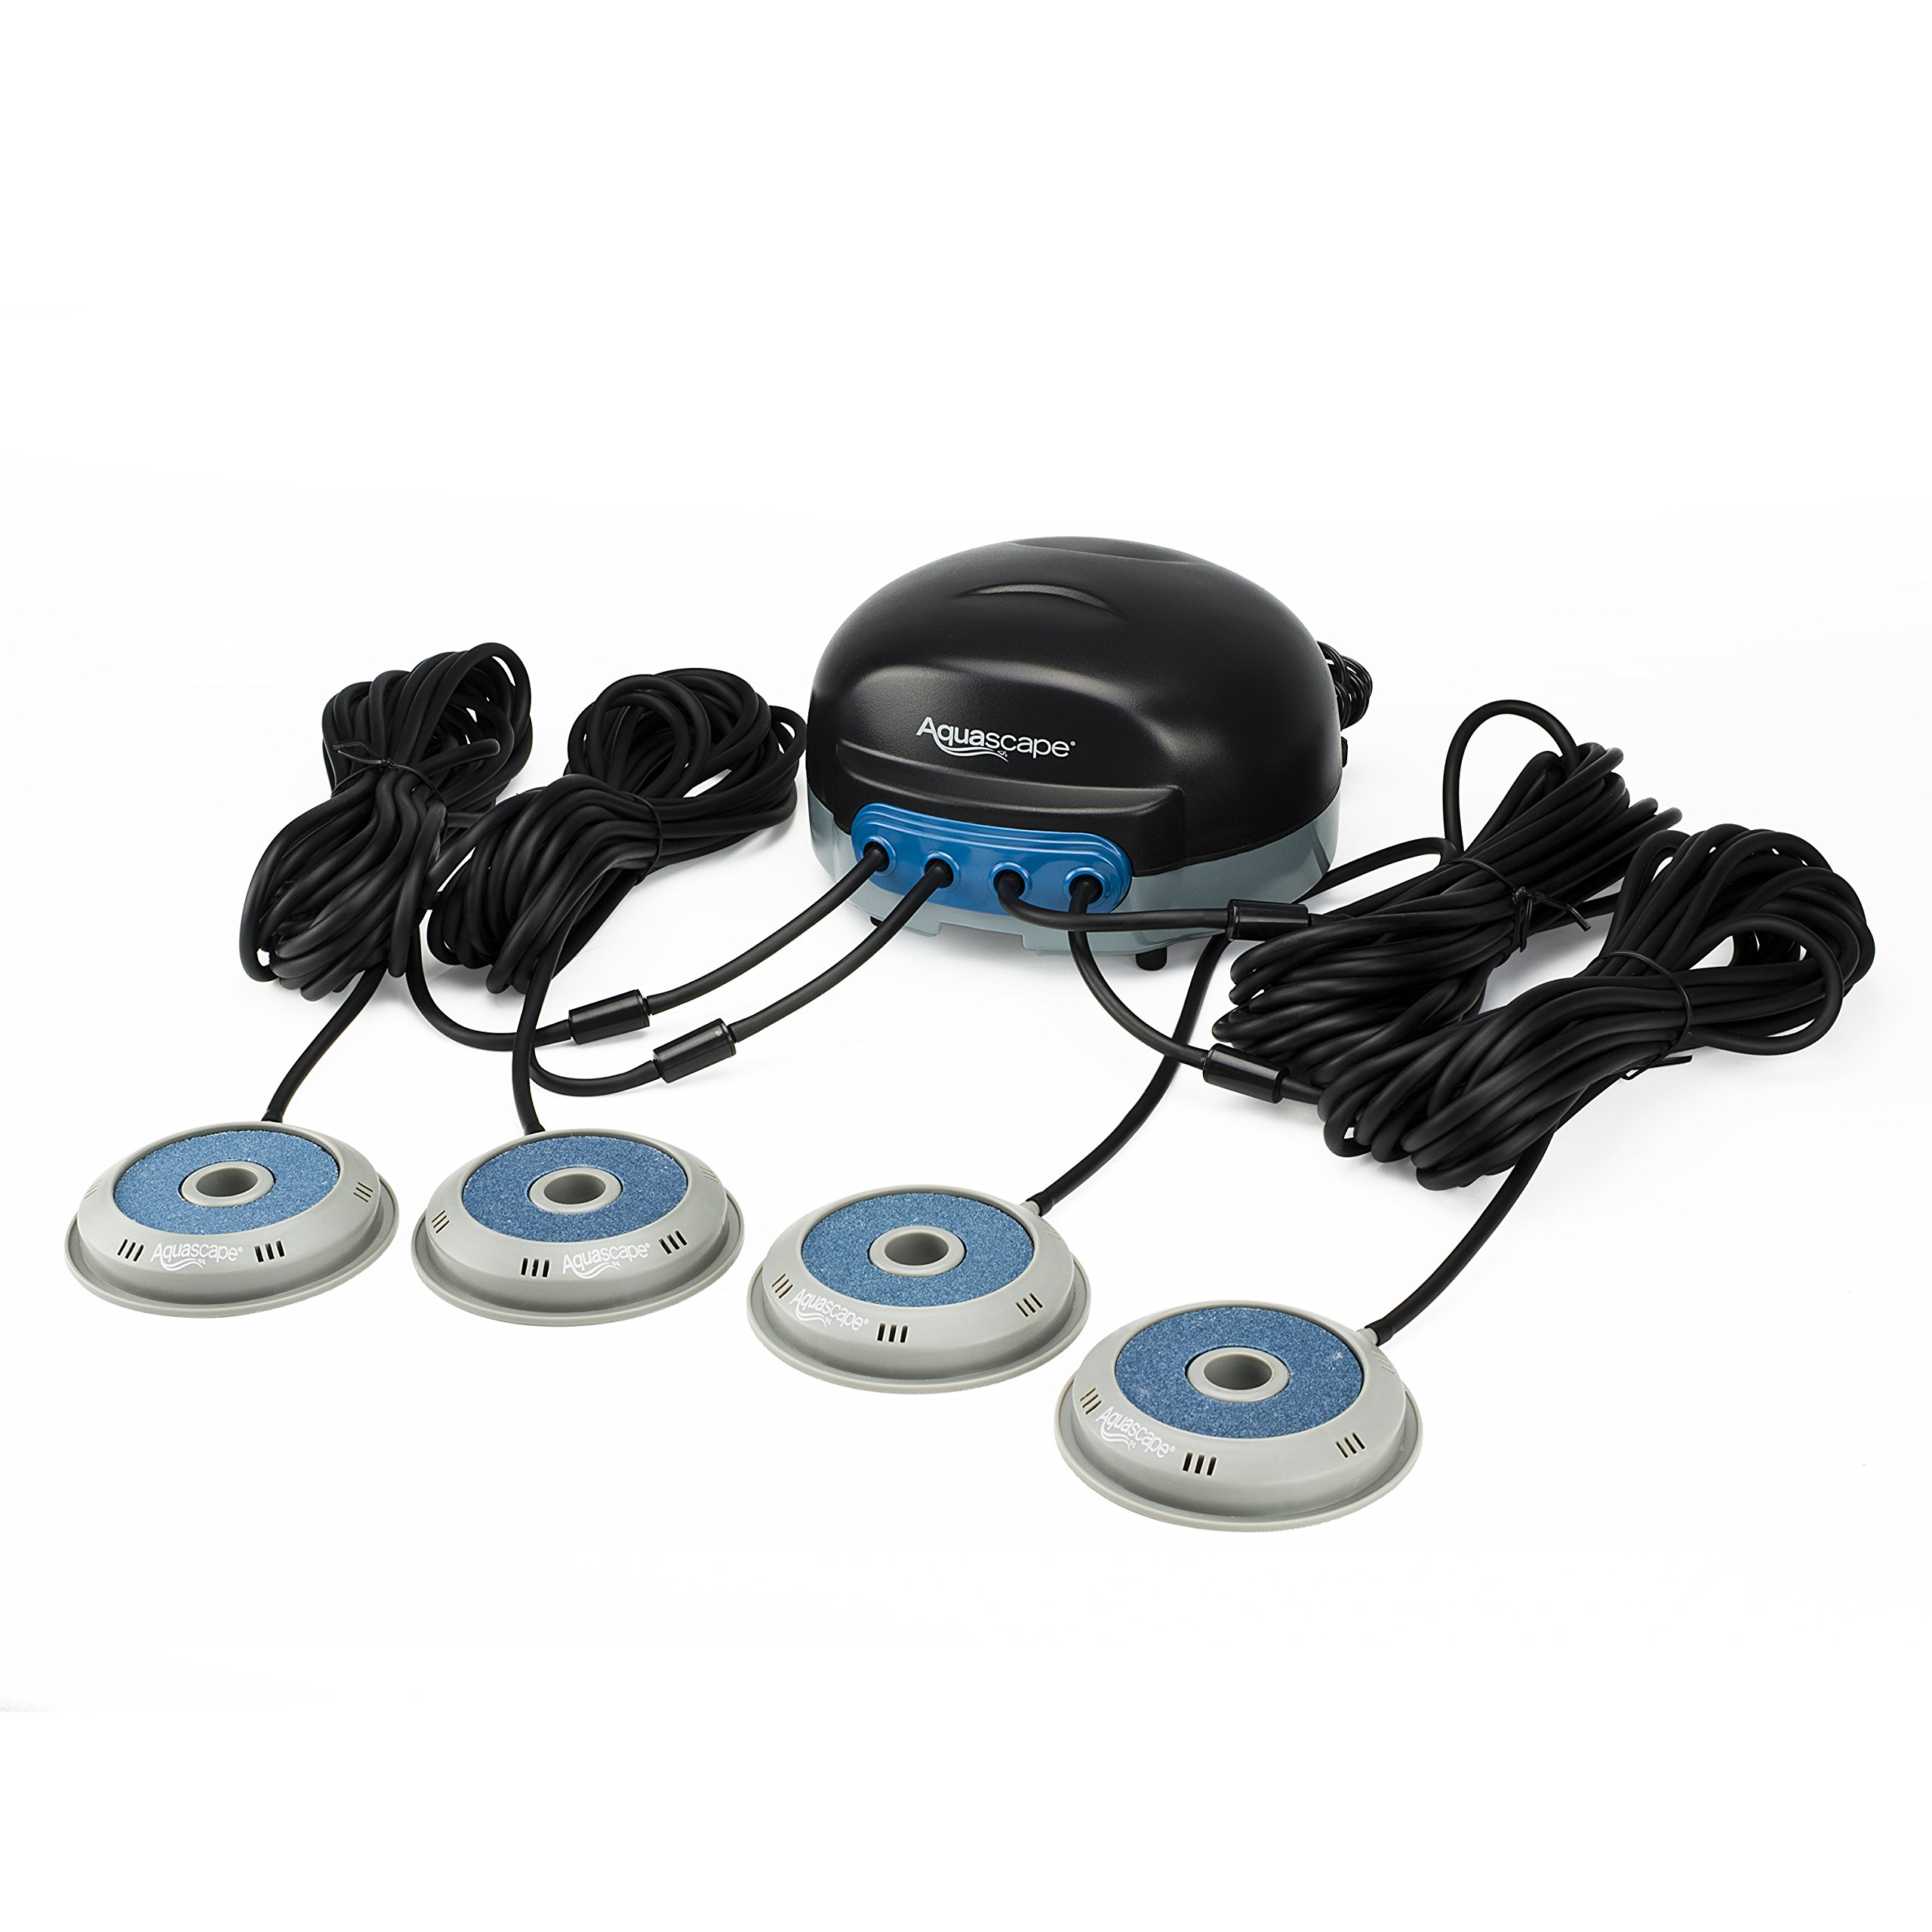 Aquascape Pond AIR 4 Aerator with 2 Additional Replacement AIRSTONES, Air Line, Power Cord and More - Adds Oxygen, Raises Water Quality and Clarity, Helps Fish and Plants - Quiet and Energy Efficient by Aquascape